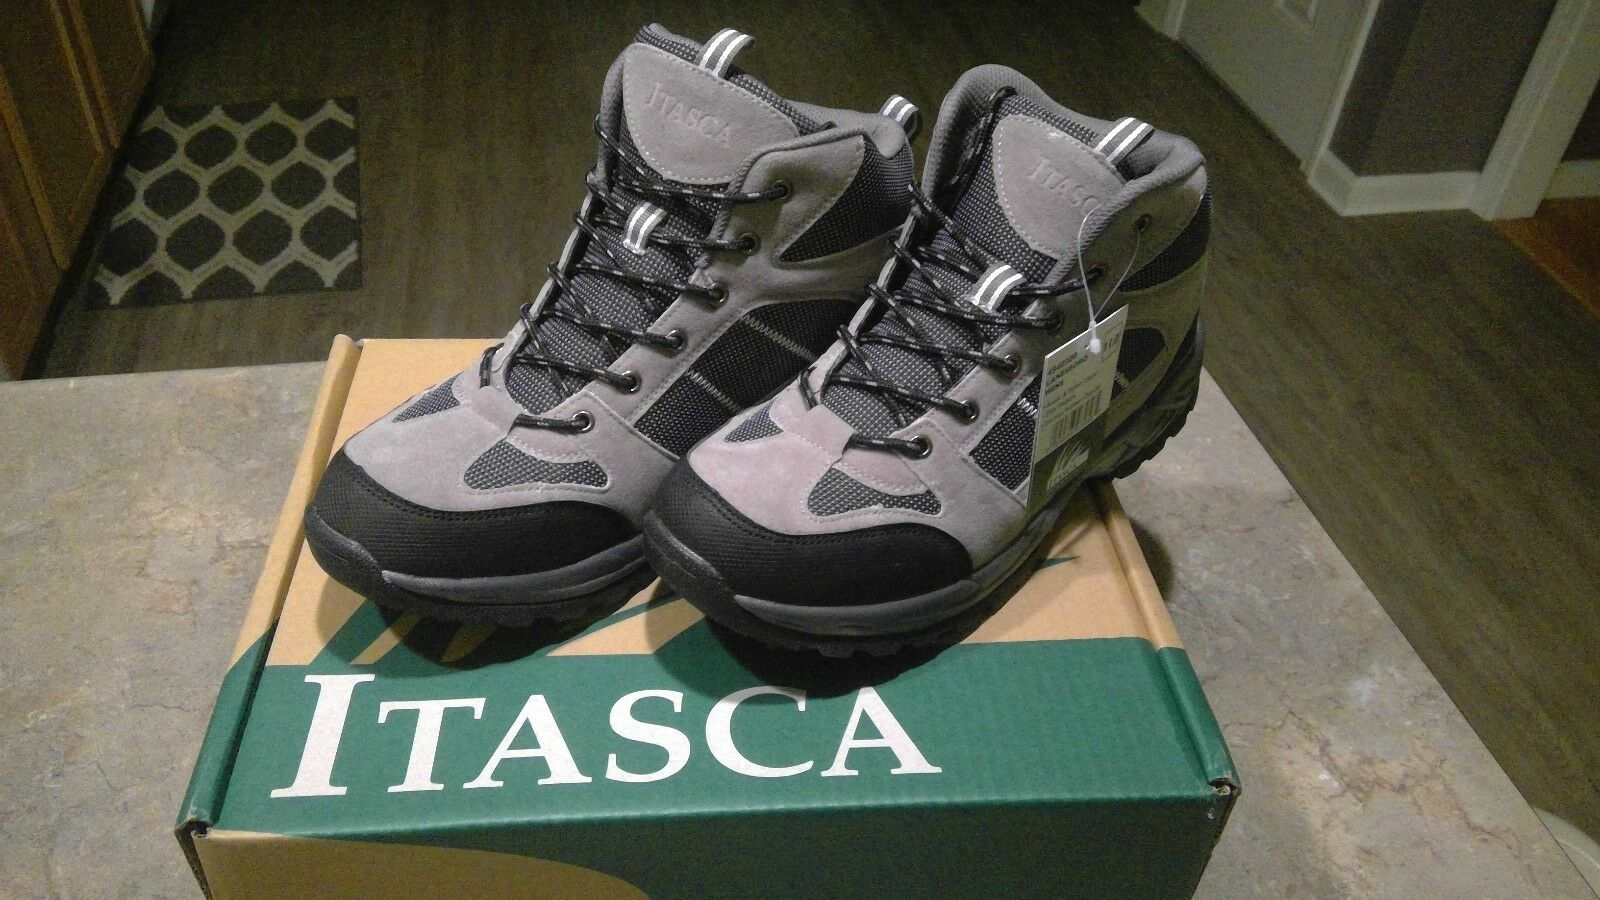 ITASCA  LANESBgold  MENS SUEDE  & NYLON TRACTION HIKING SHOE   SIZE 11   NIB    find your favorite here